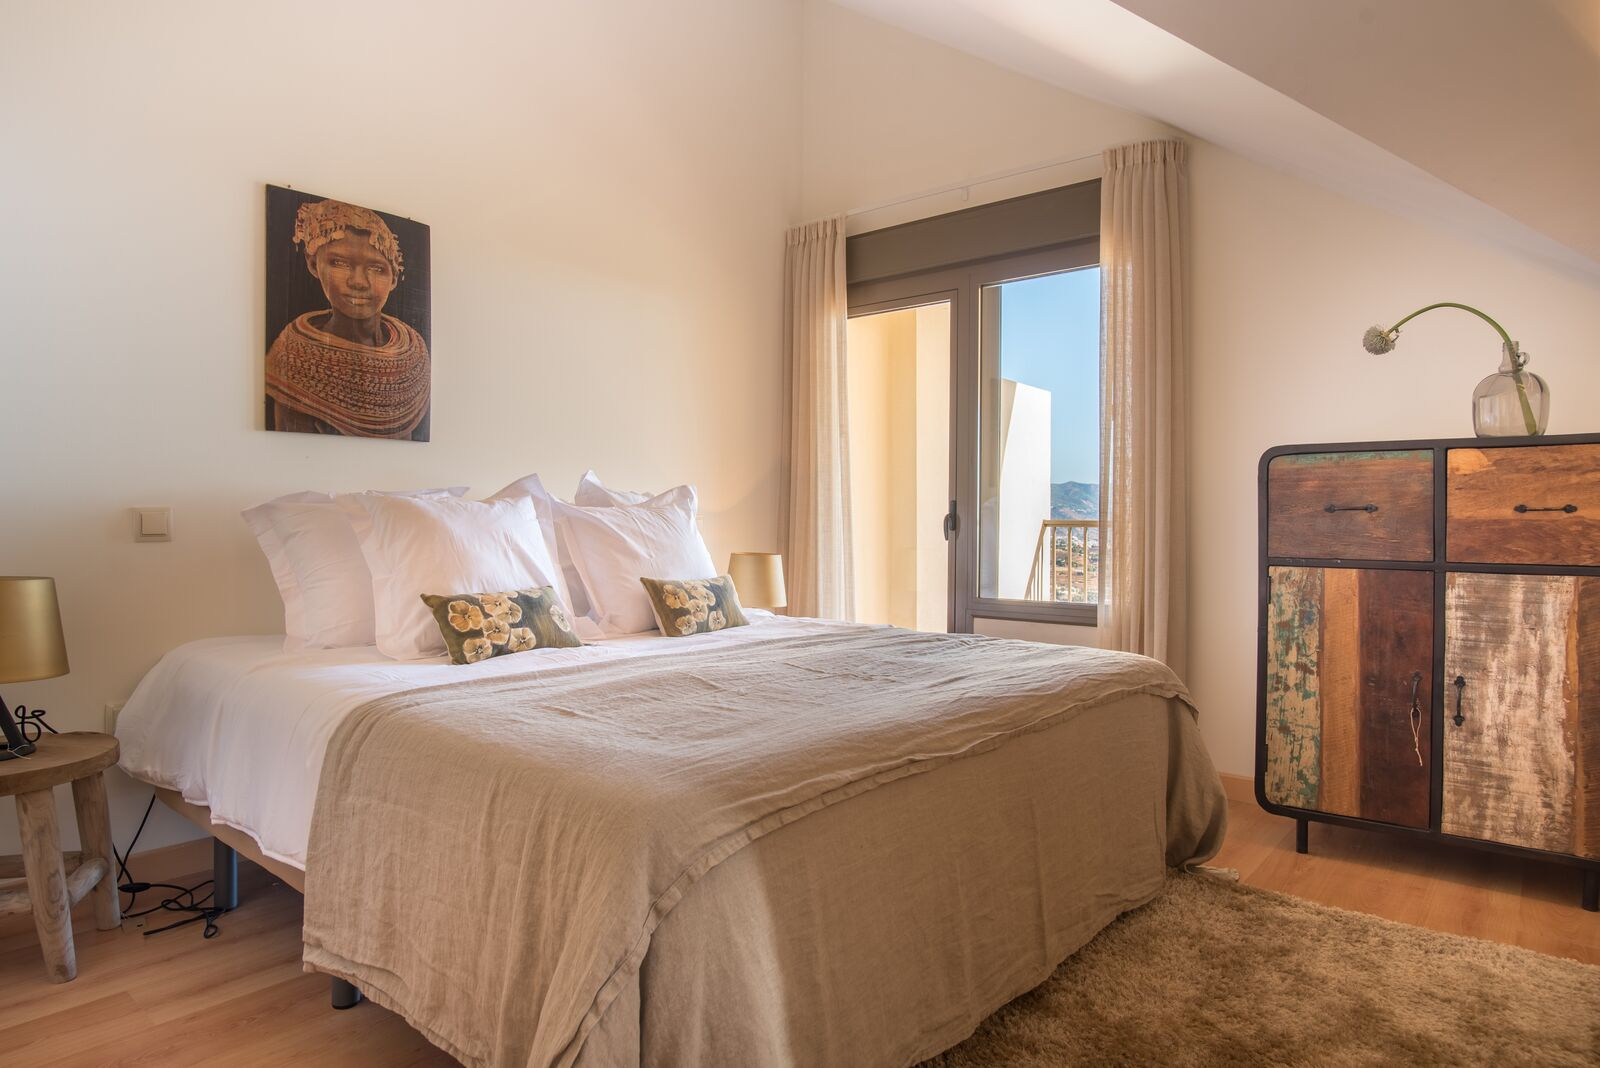 La-Cala-Suites-Homely-Interior-1